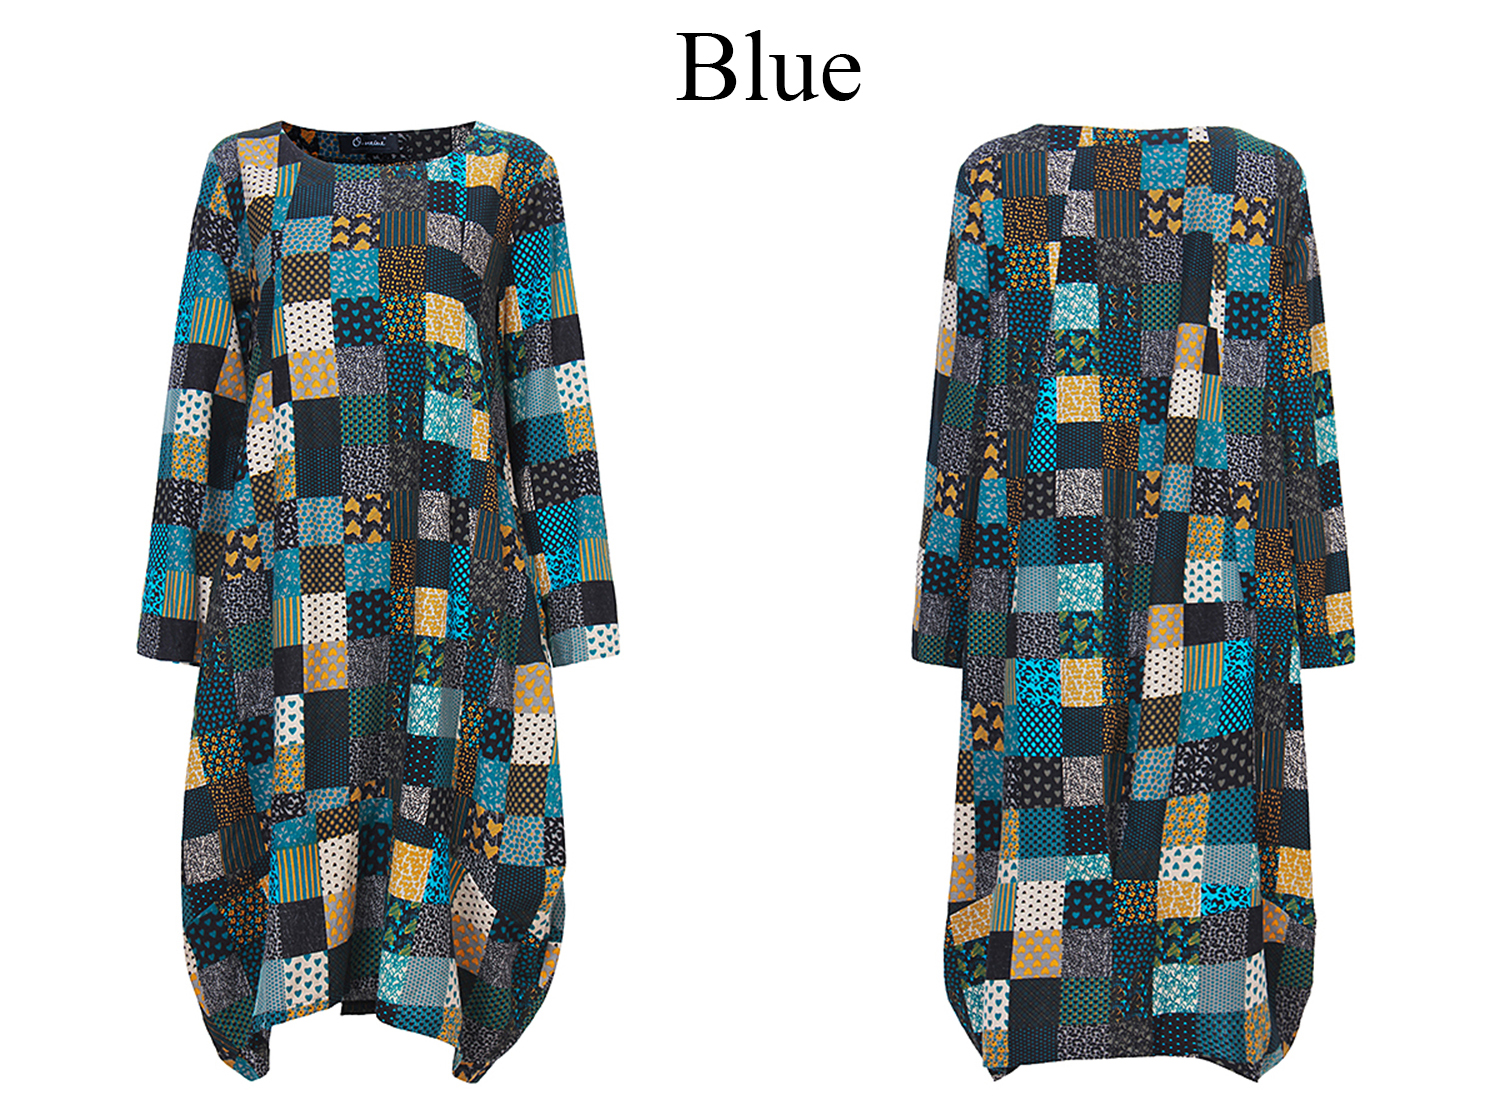 L-5XL Vintage Women Color Block Printed Dress